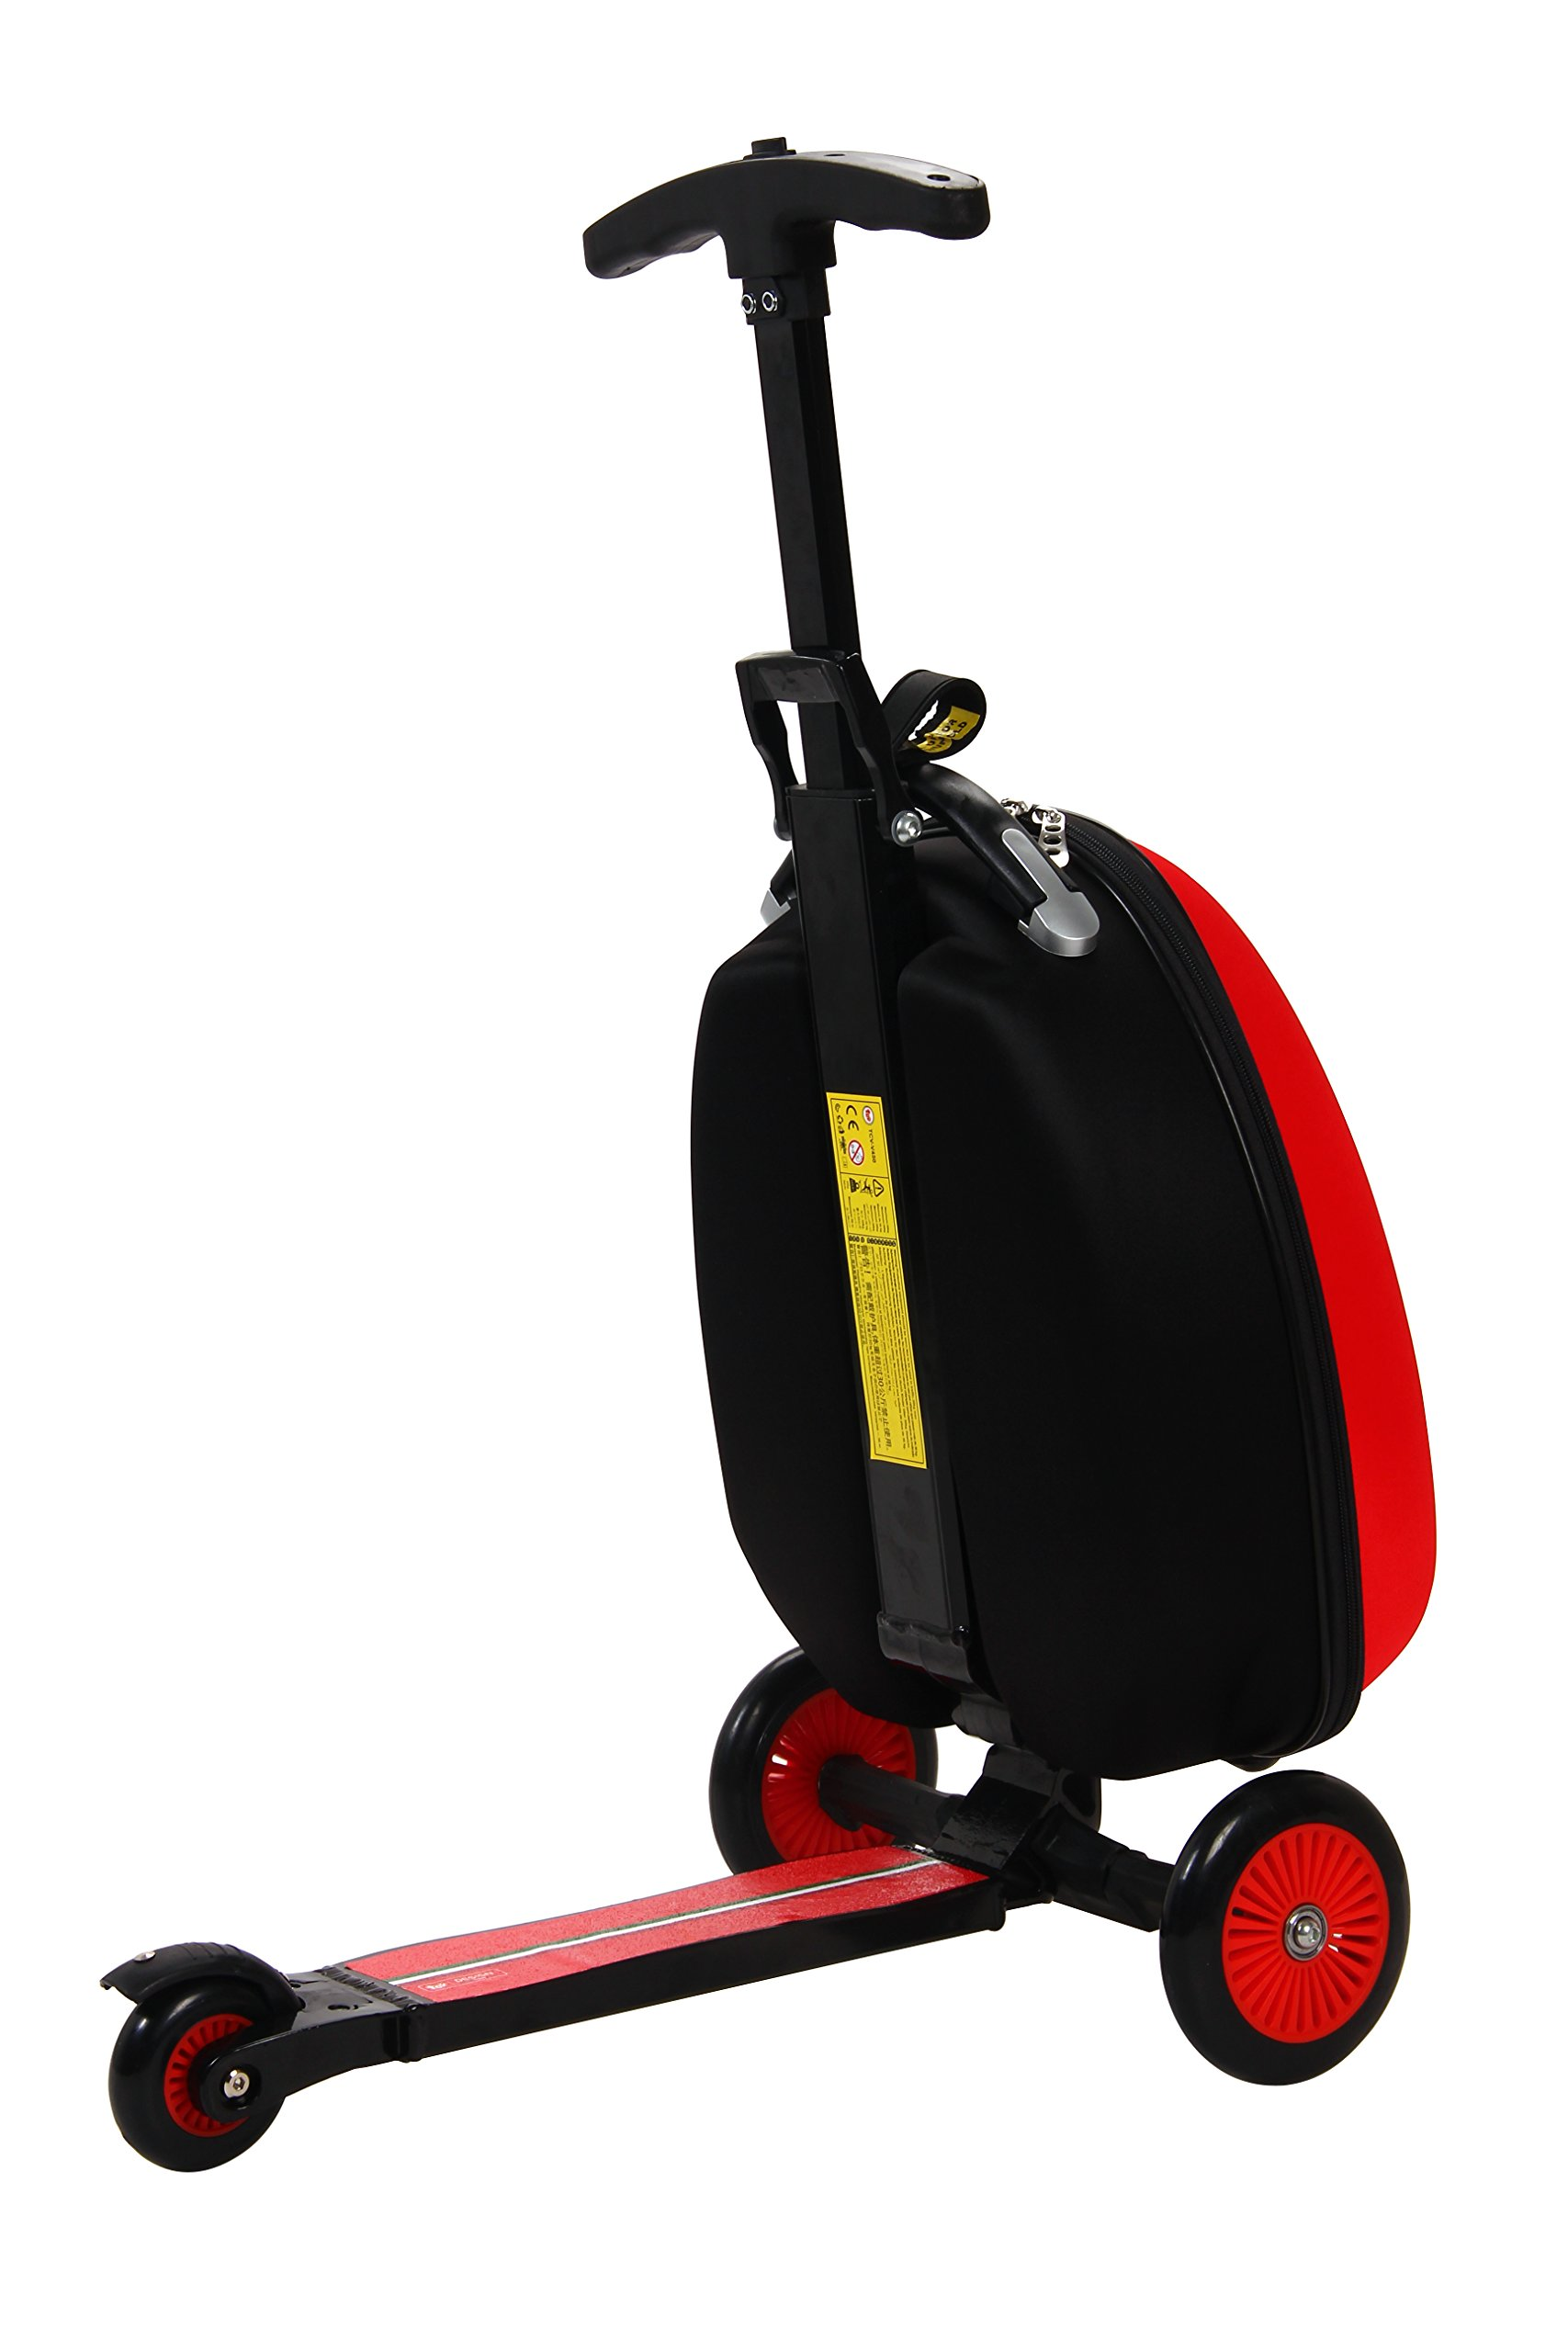 Ferrari Kids Scooter Luggage, Red by Ferrari (Image #3)